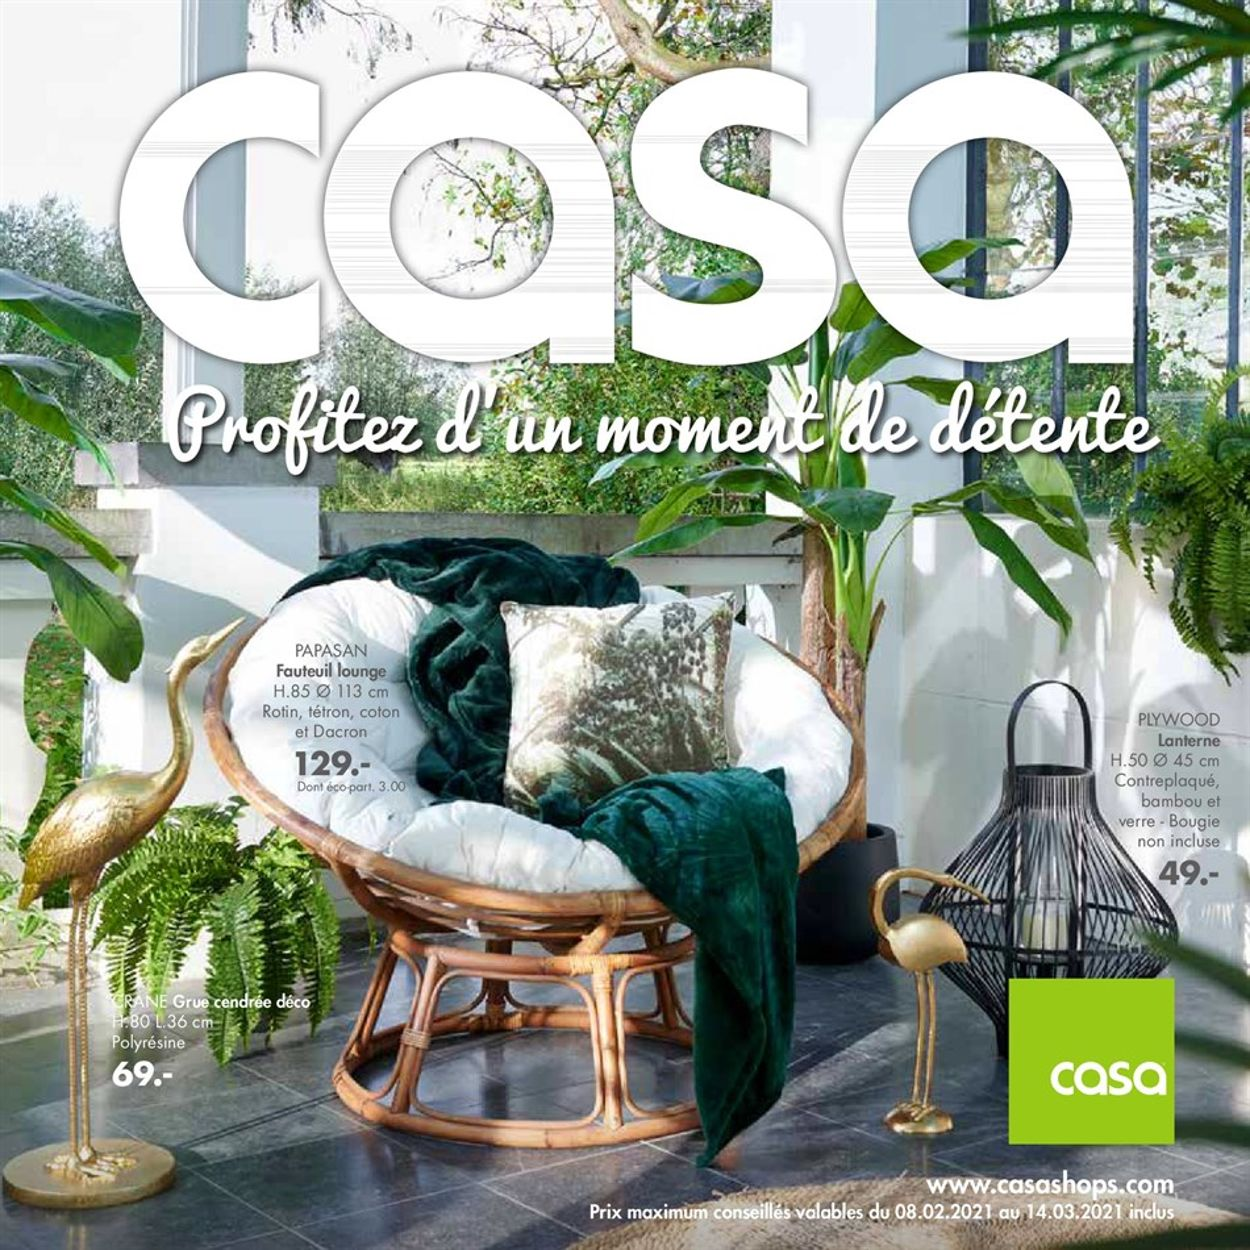 Casa Catalogue - 08.02-14.03.2021